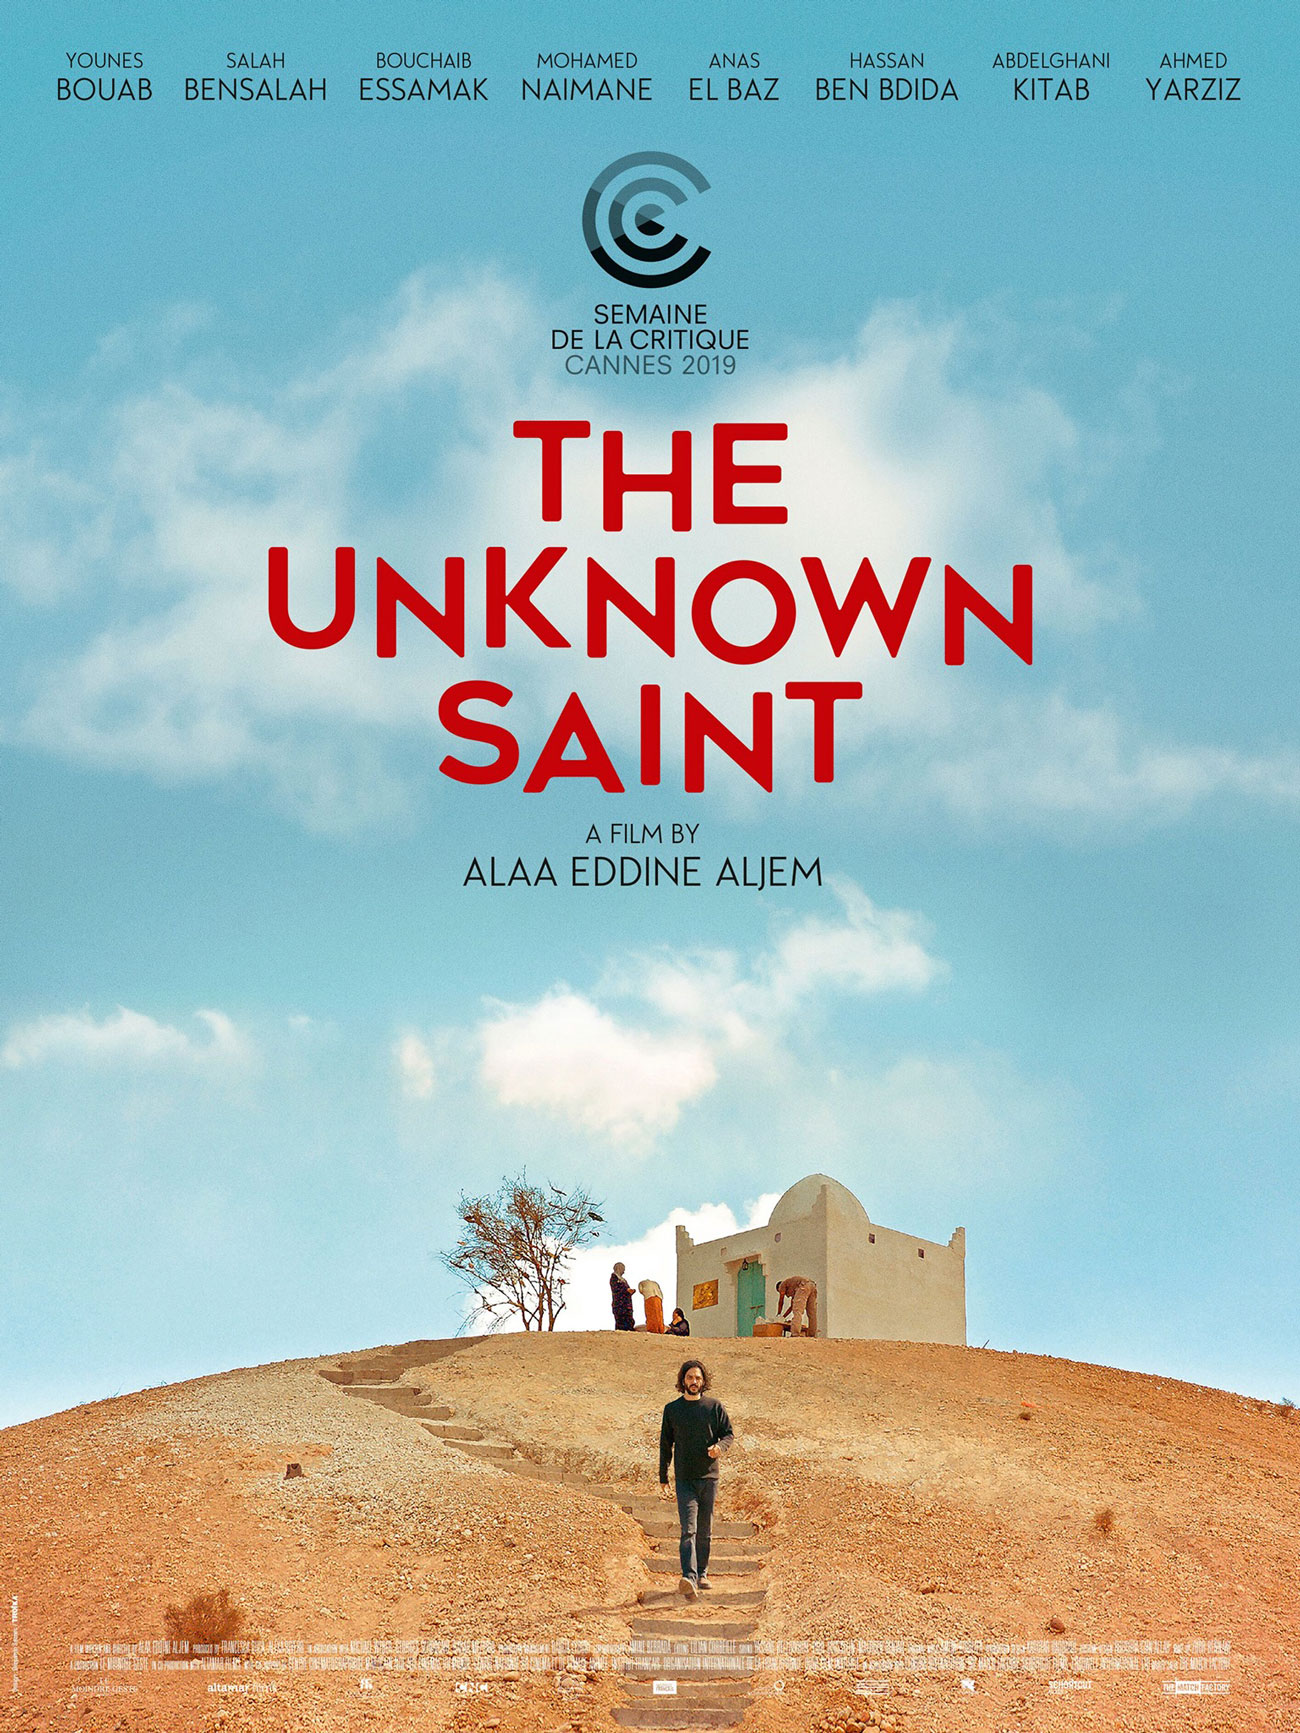 <p>Moments before his capture by police, a thief digs a grave to hide a bag of money. Released from prison years later he returns to retrieve the bag, only to find a shrine to an Unknown Saint built directly over his loot, and a brand new village constructed all around it.</p>